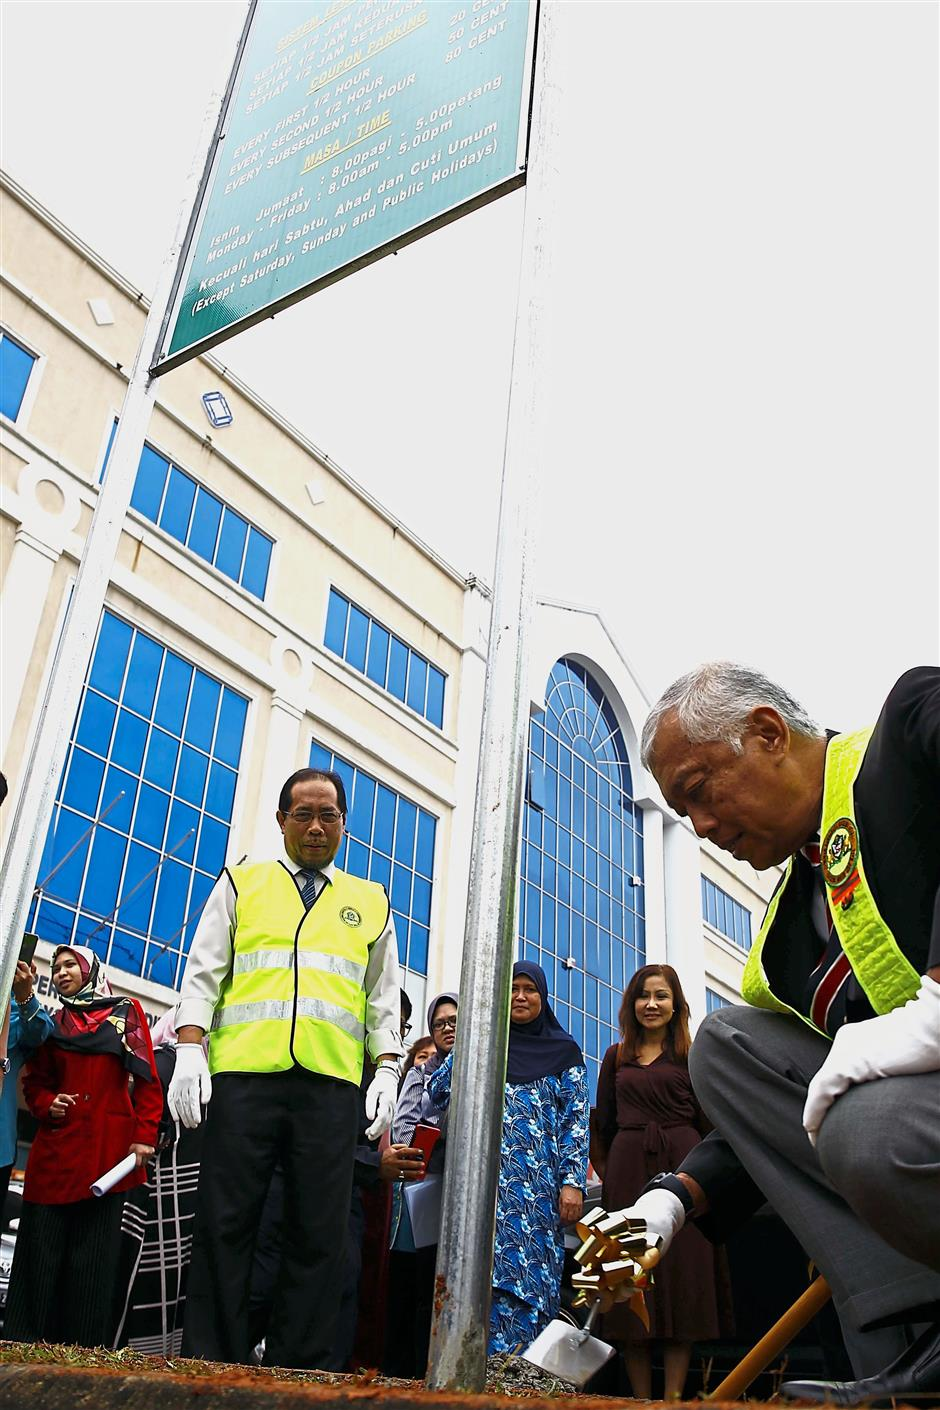 (Below) Abang Wahap leveling concrete at the base of a signboard with information about parking rates at a newly-gazetted coupon parking area at Jalan Kulas. —Photos: ZULAZHAR SHEBLEE/The Star